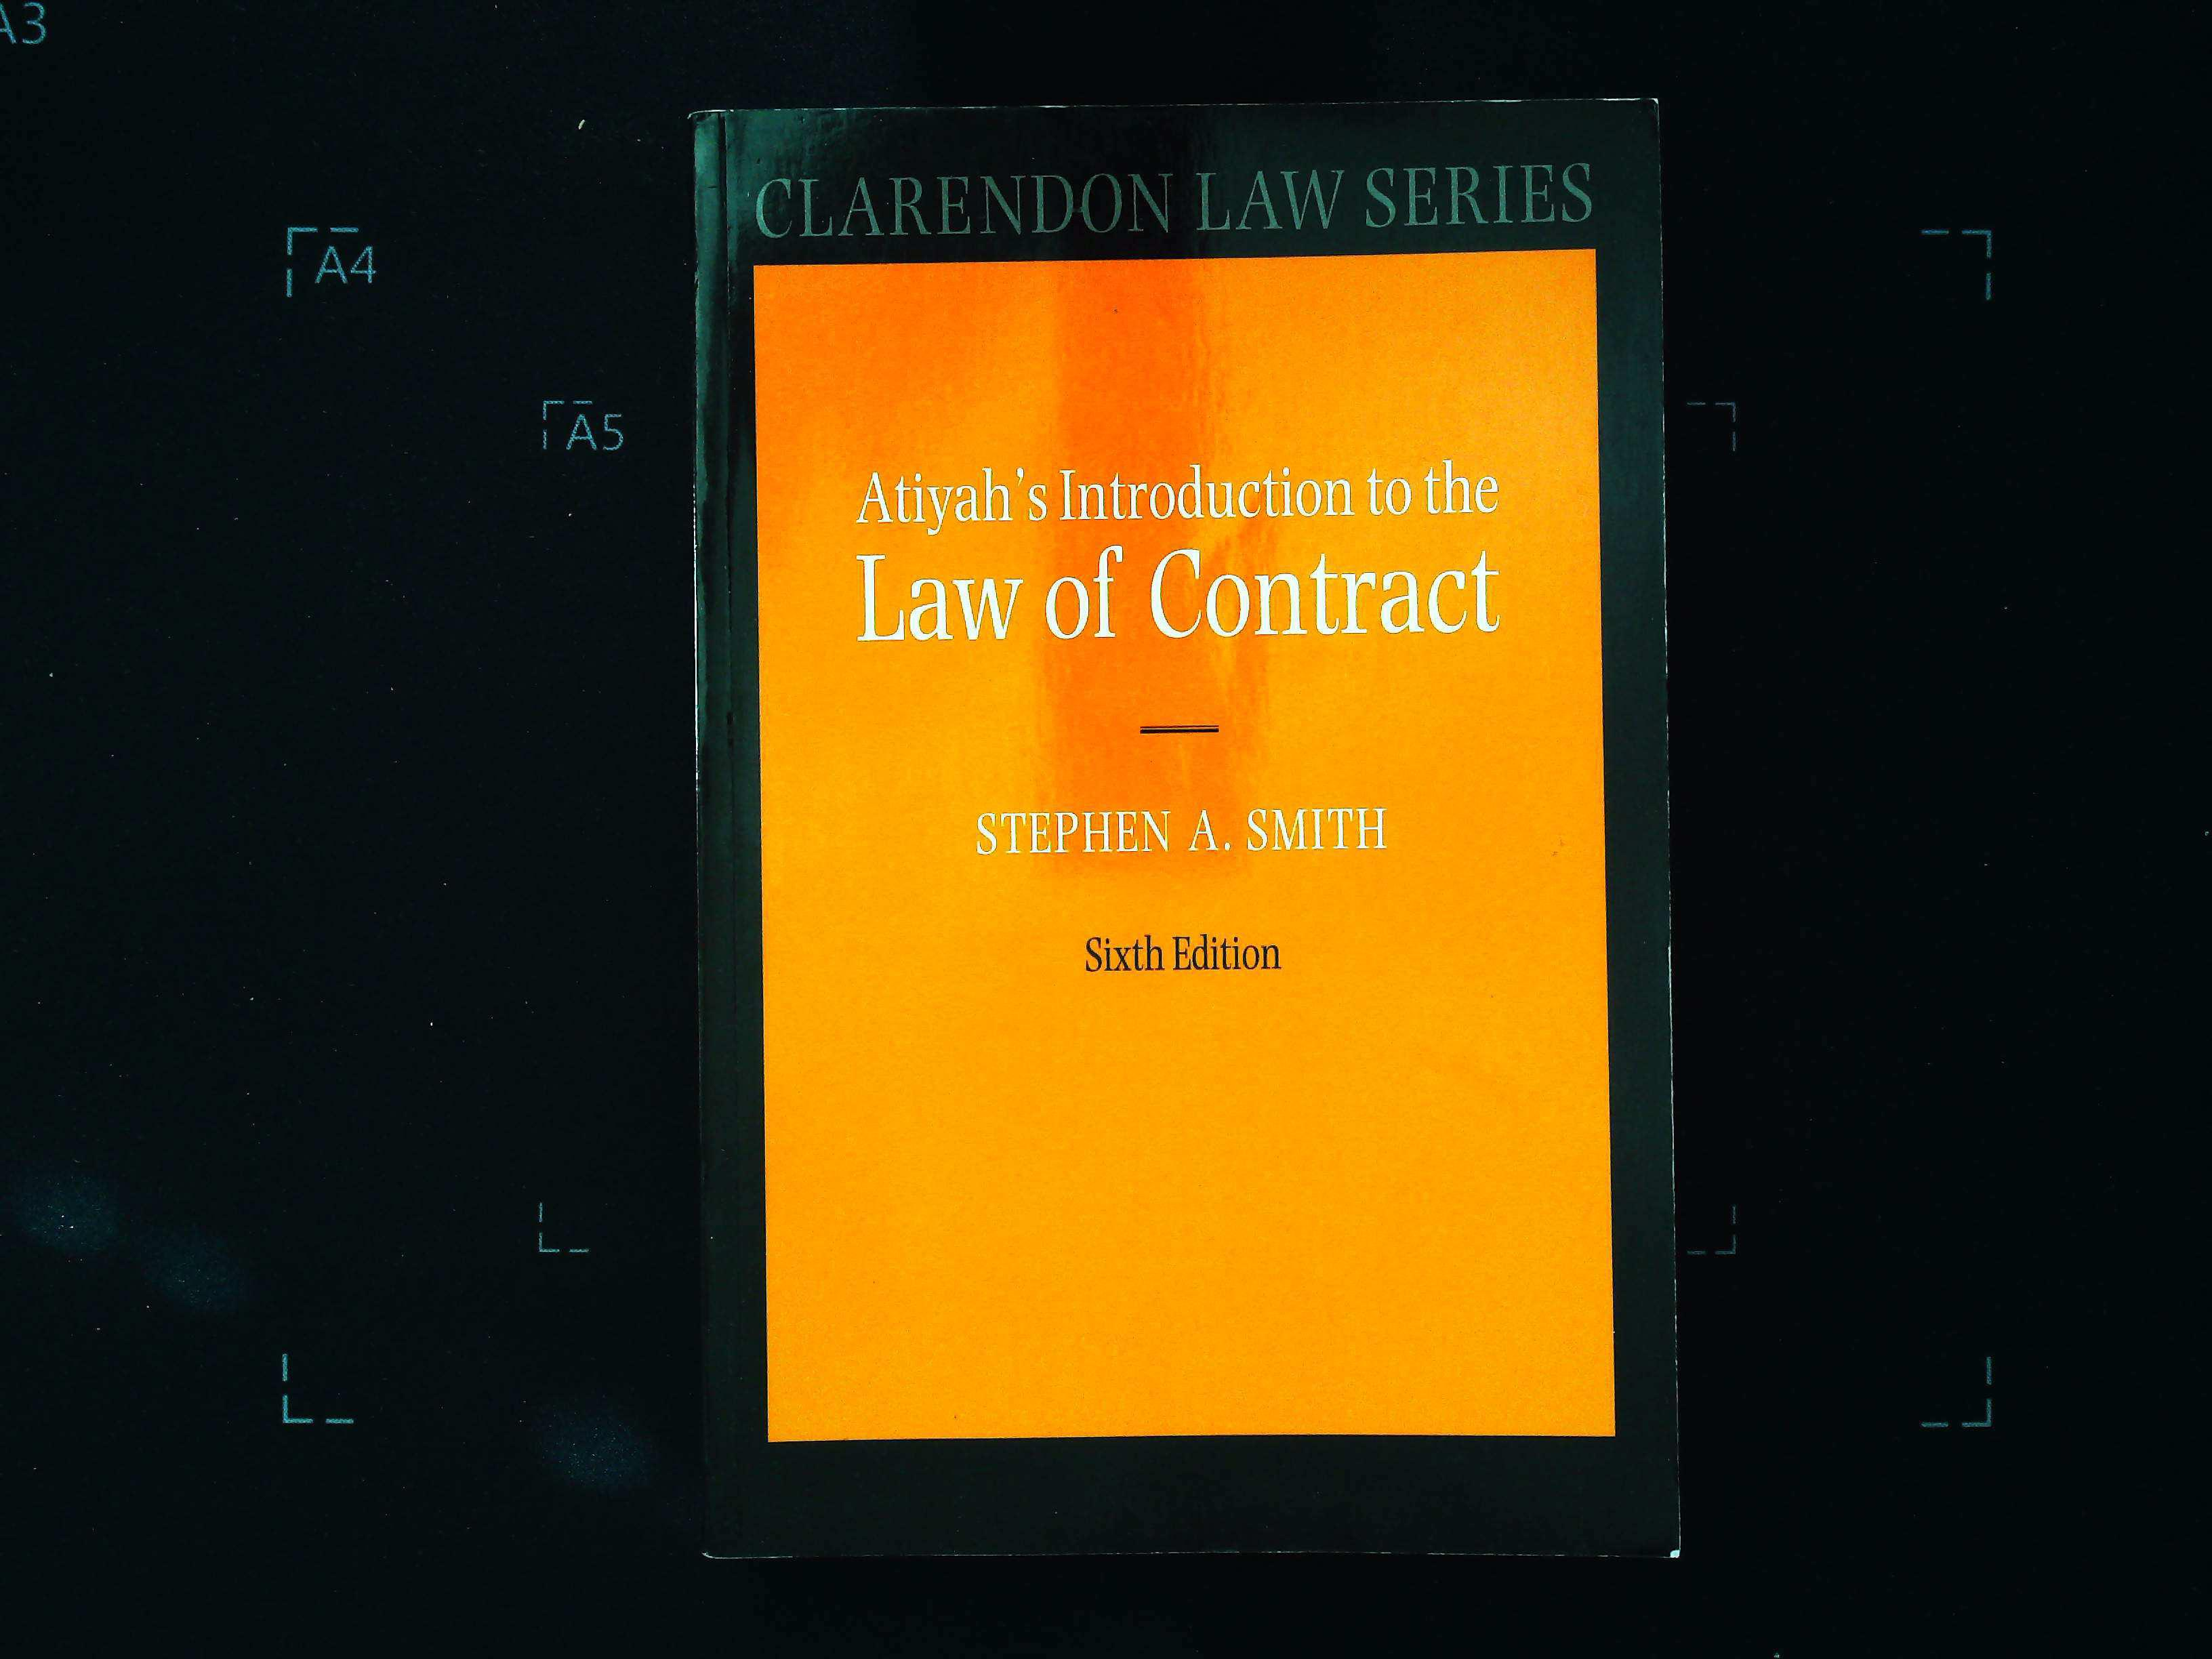 Atiyah's Introduction To The Law Contract 6th Edition paperback book by Stephen A Smith. Published